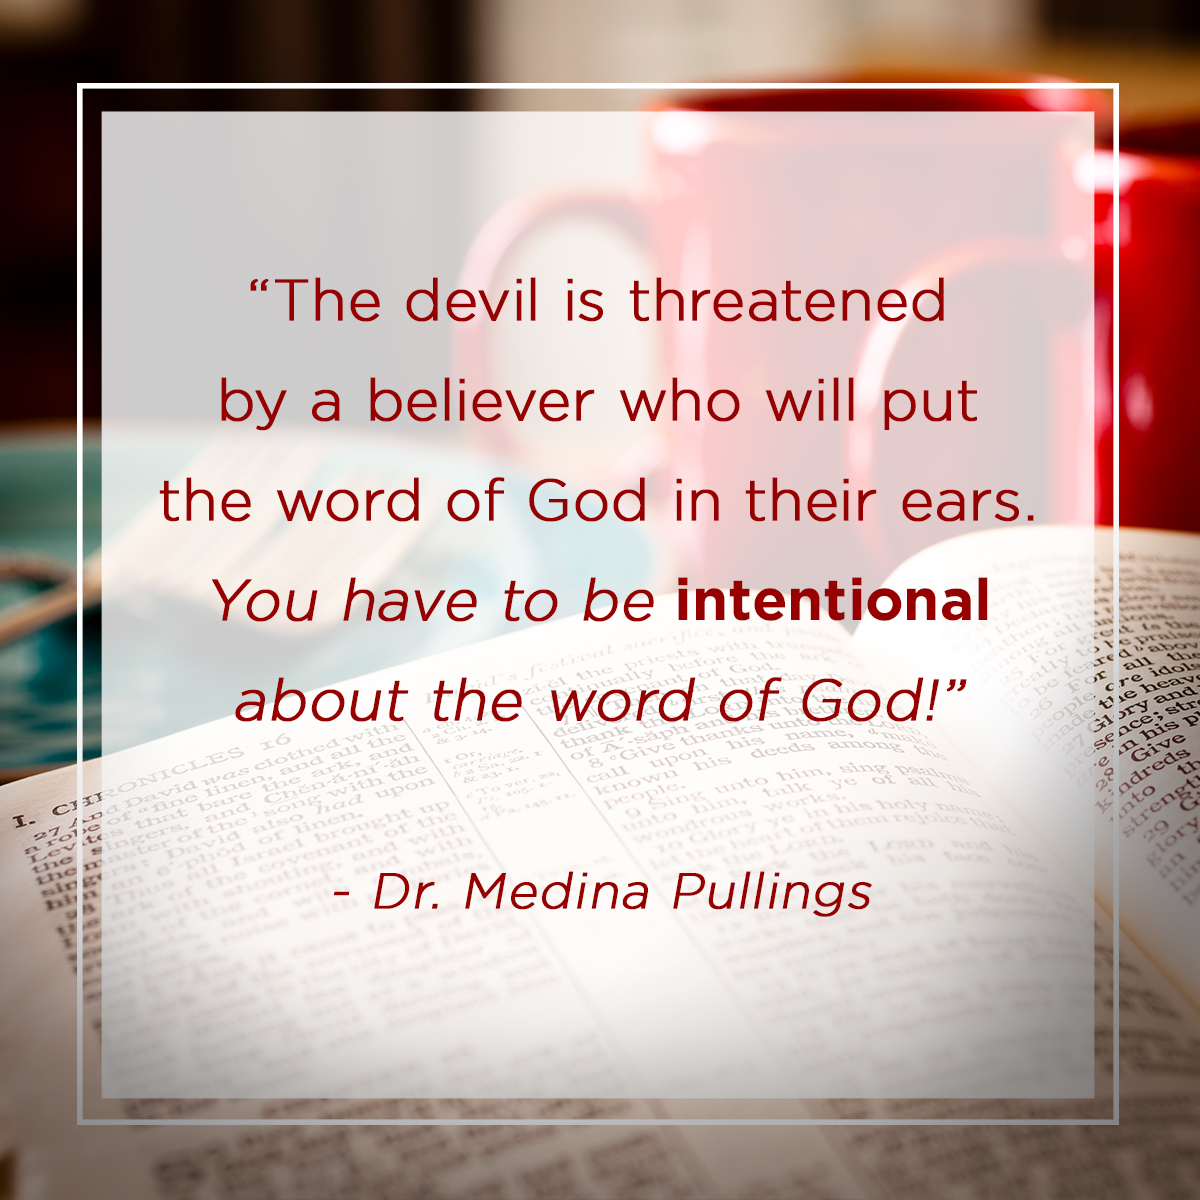 """The devil is threatened by a believer who will put the word of God in their ears. You have to be intentional about the word of God!"" – Dr. Medina Pullings"